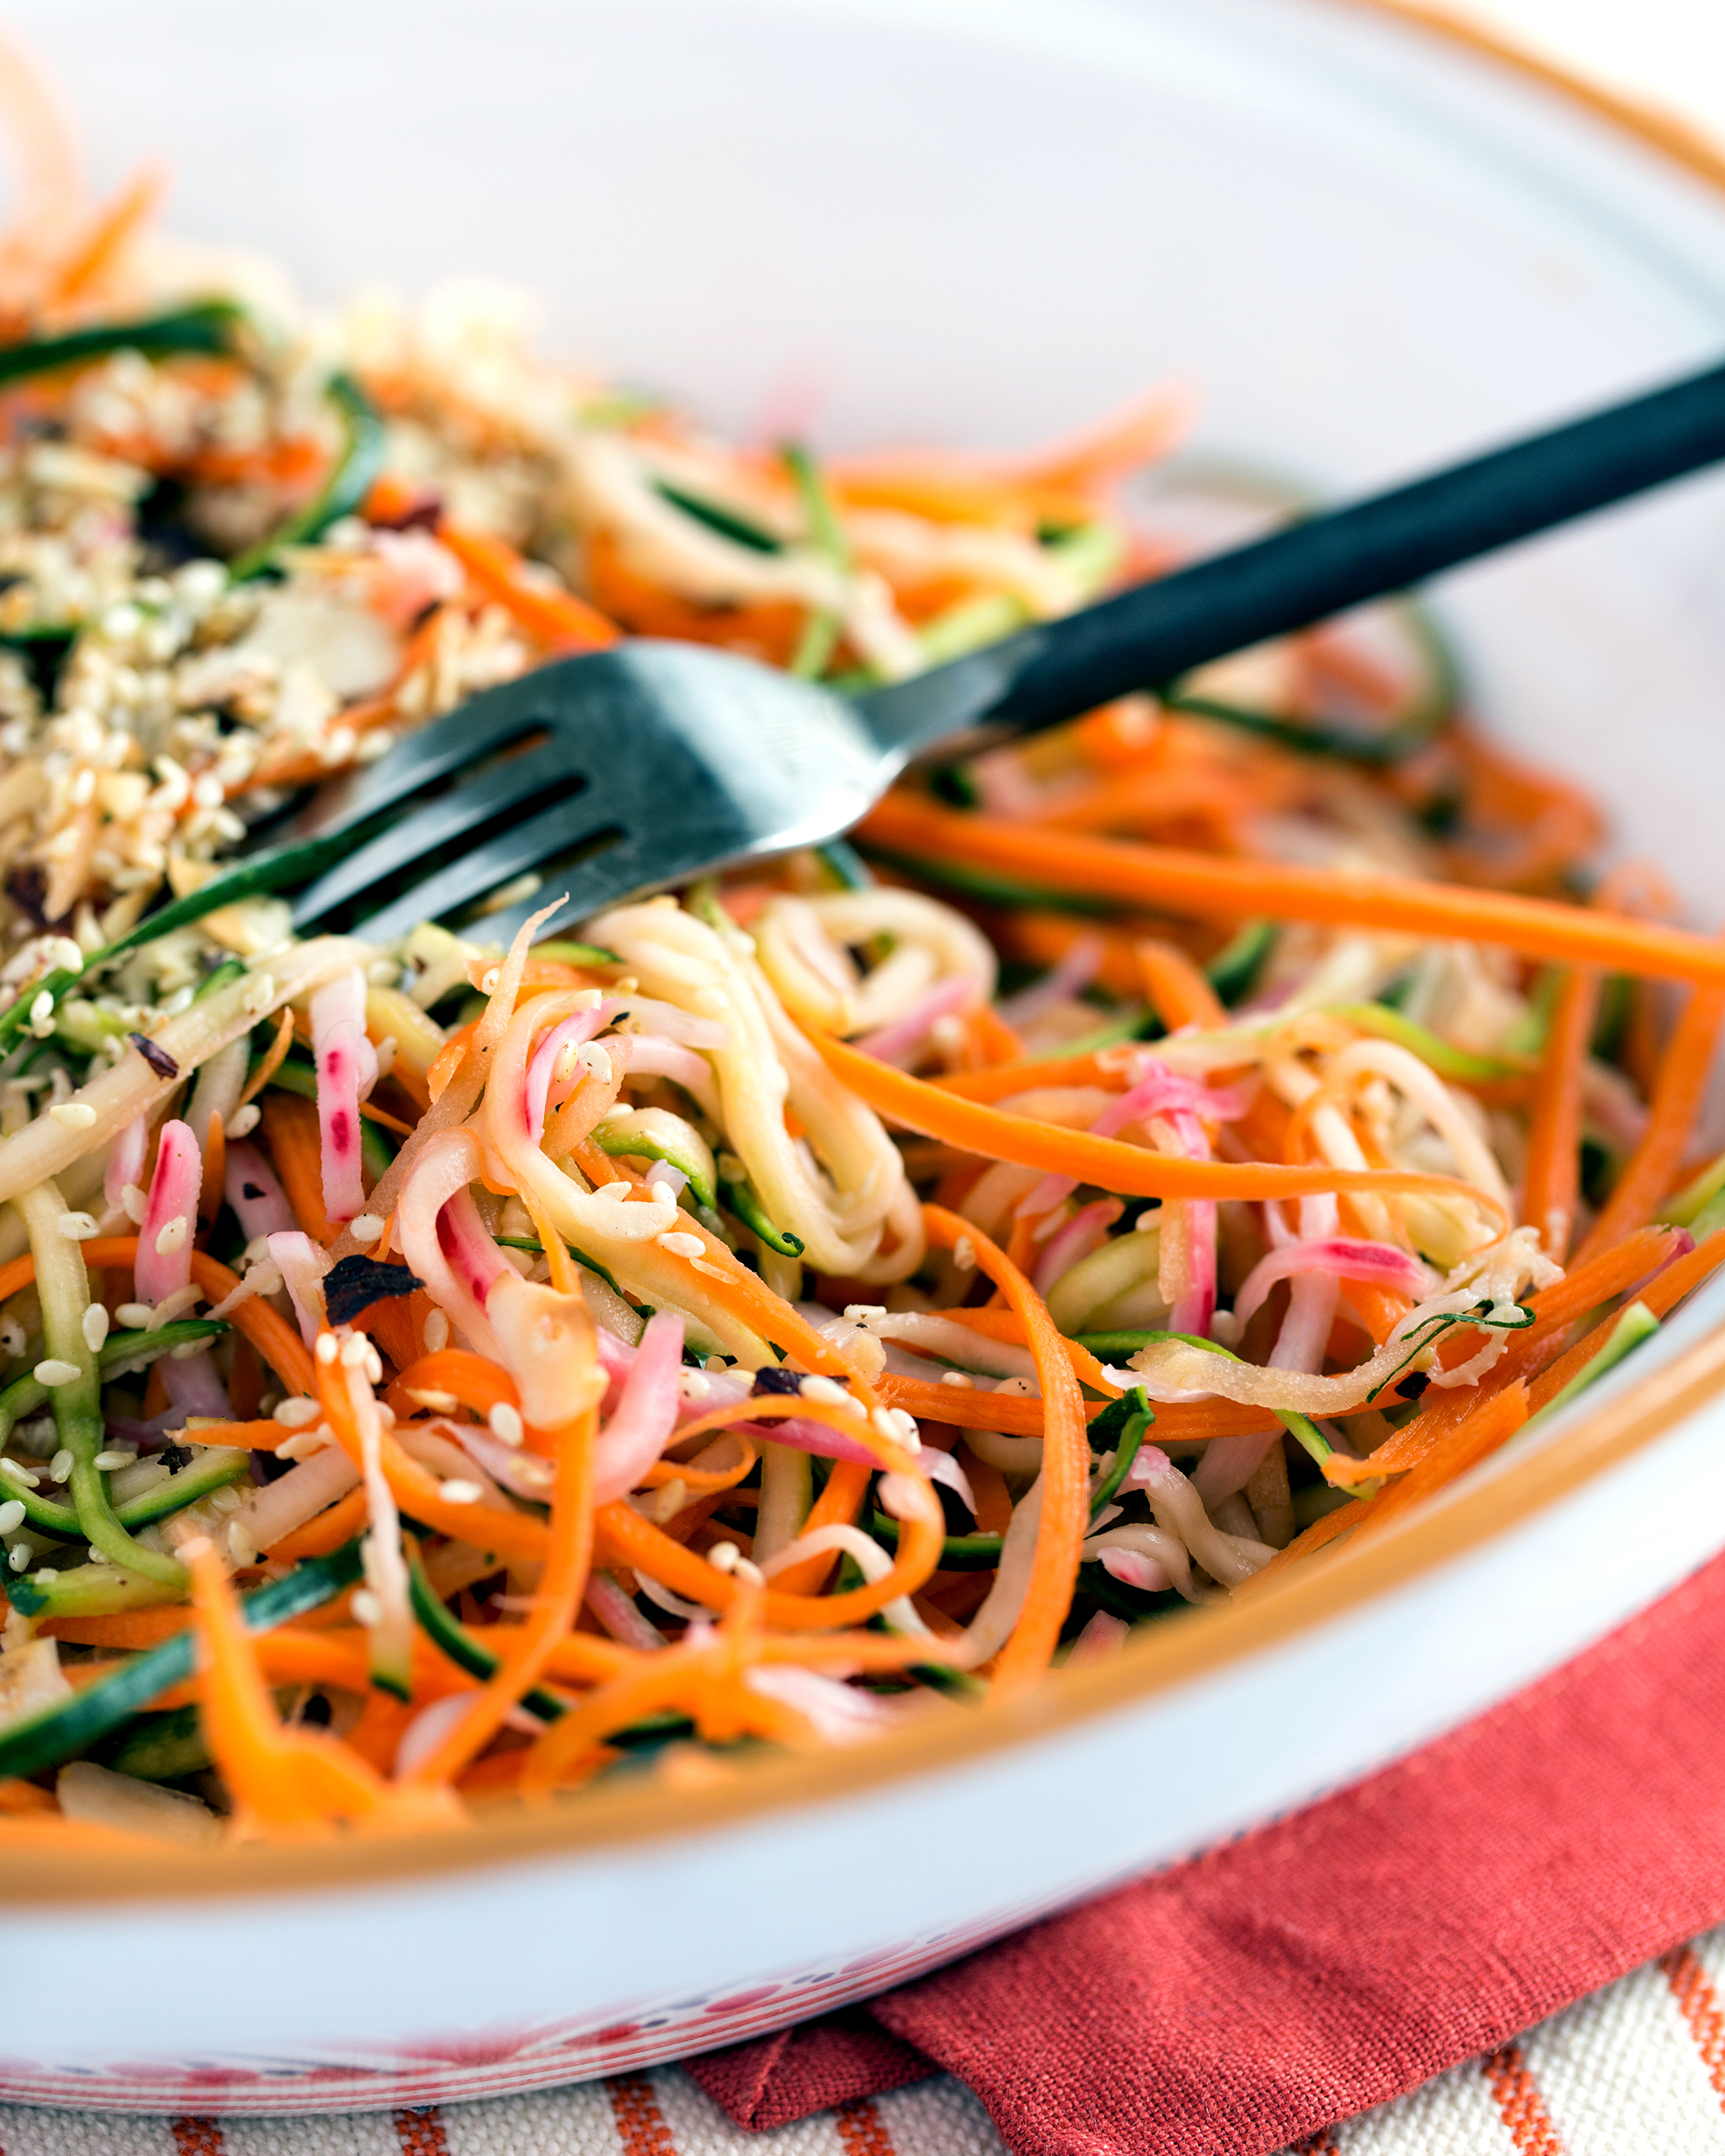 A close-up photo of a finished plate of spiralized veggie salad recipe.